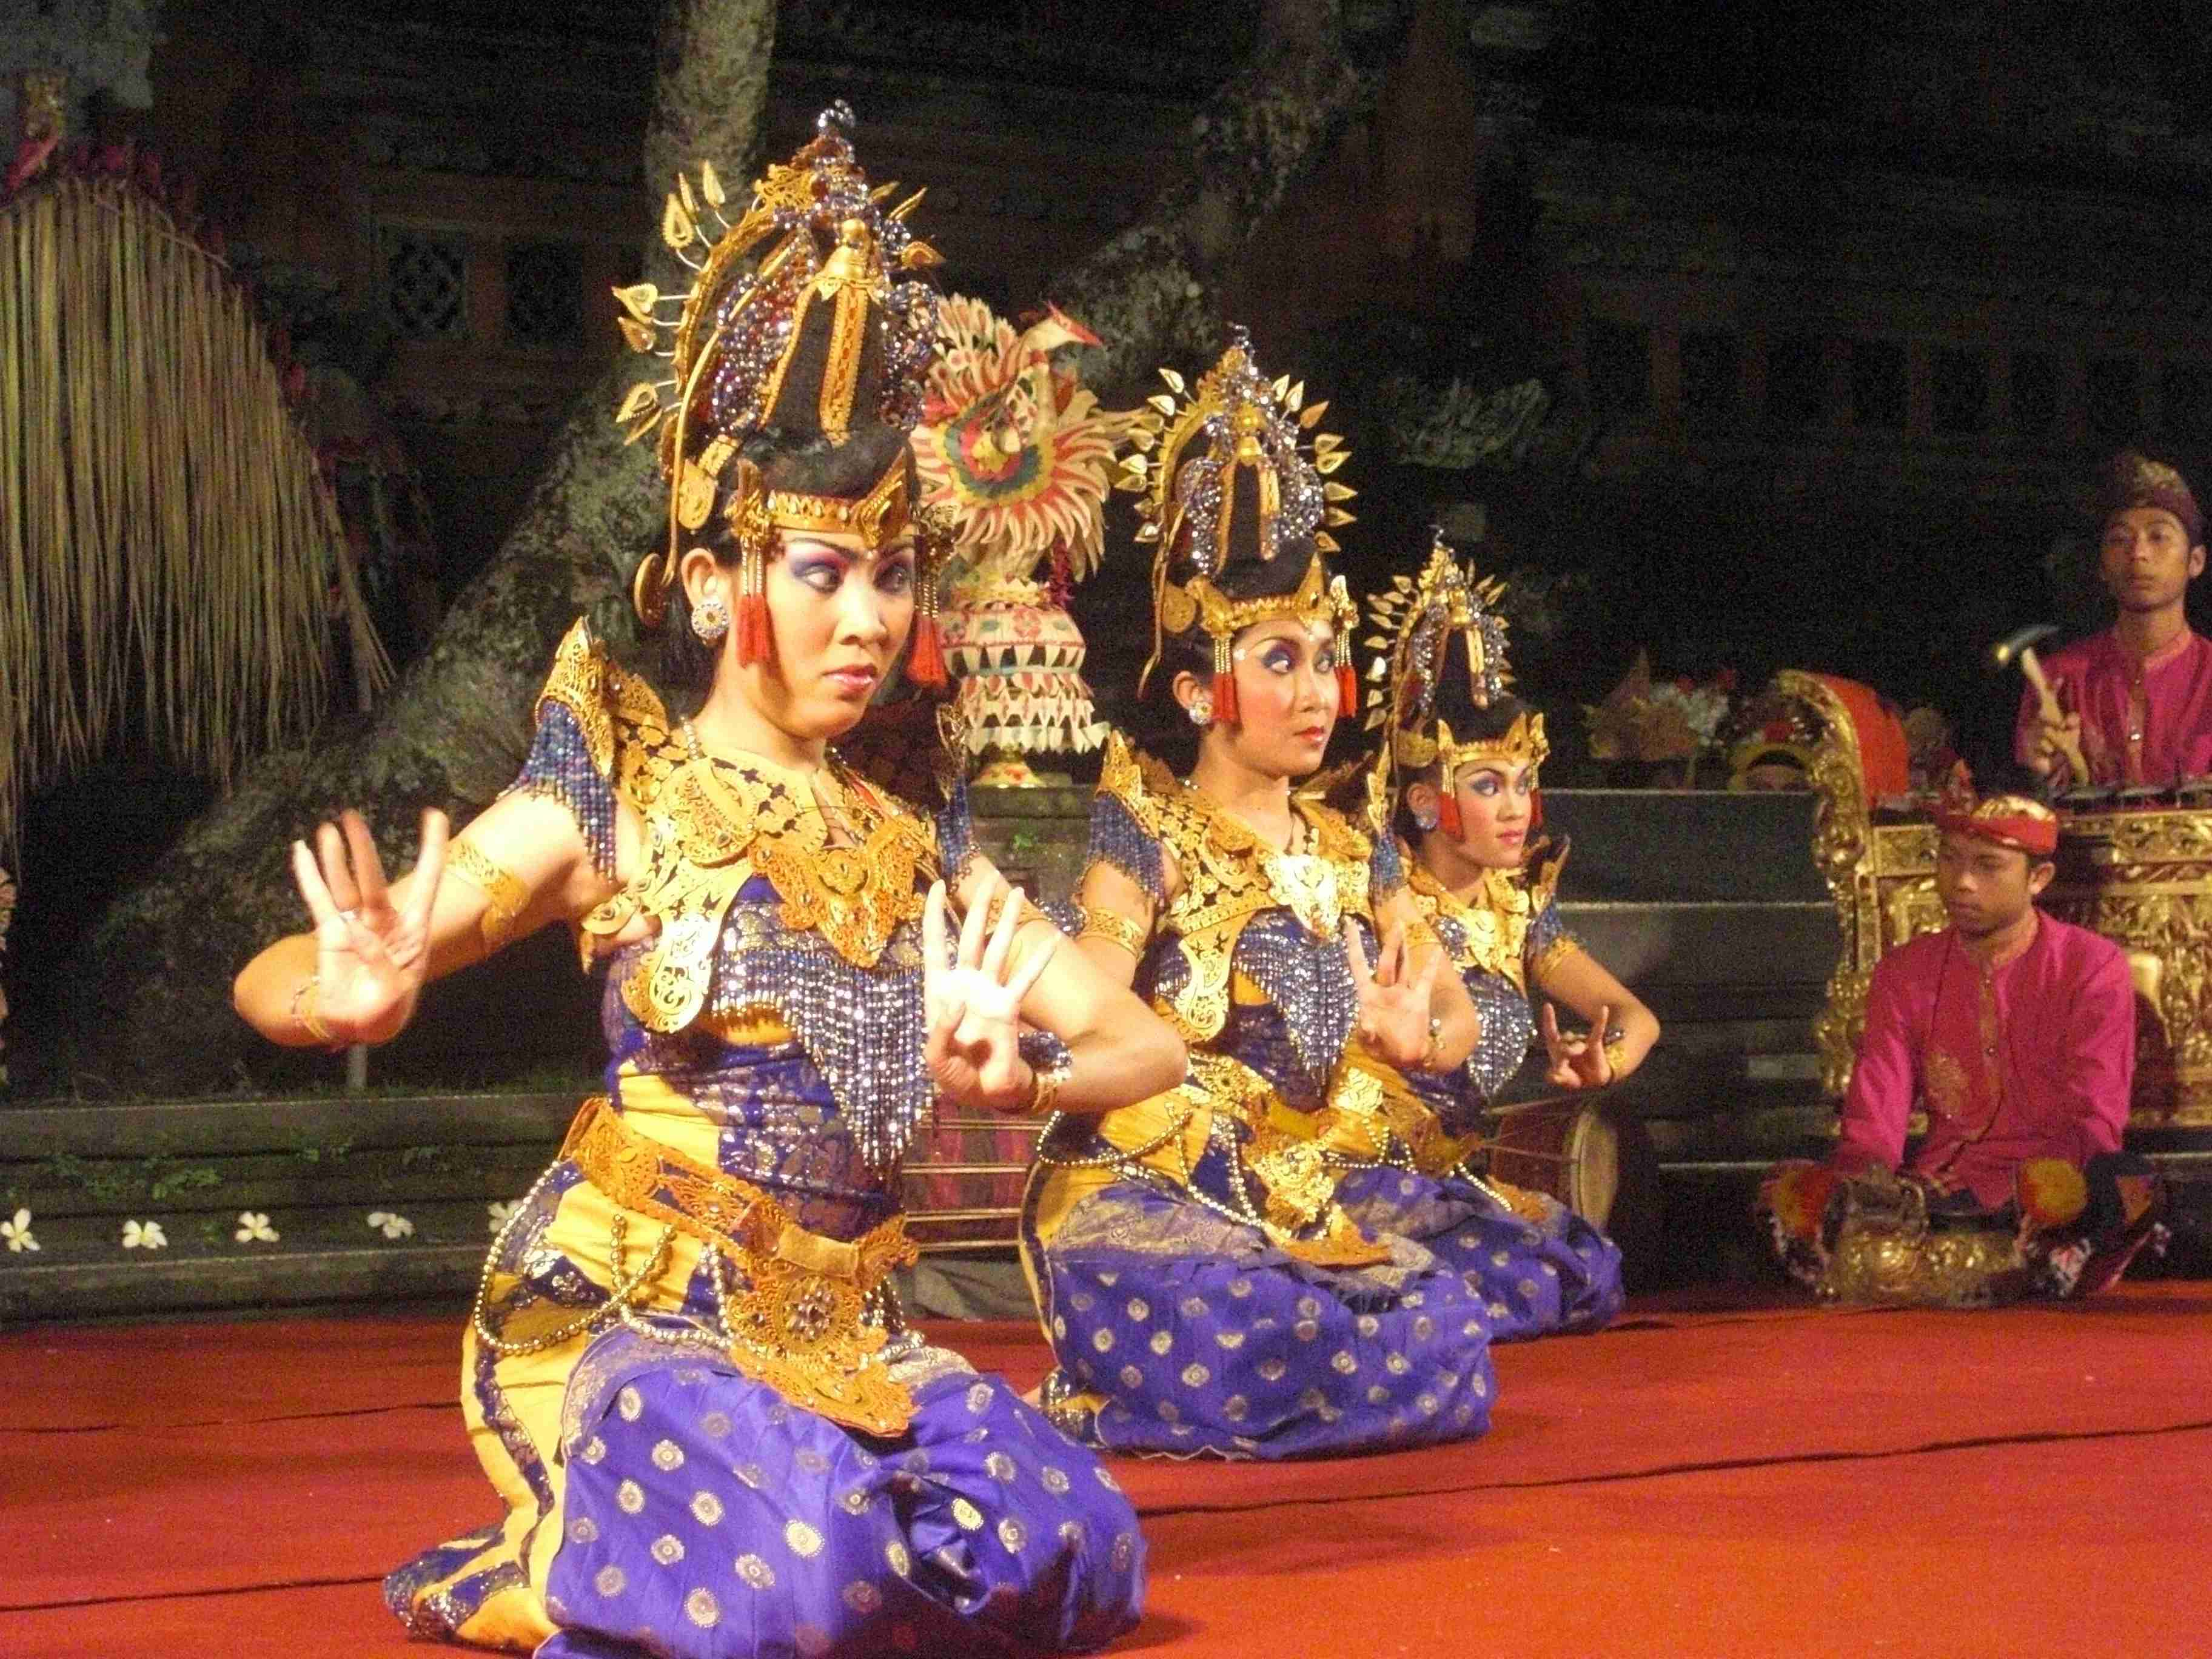 A traditional dance performance at a temple in Ubud, Bali. Photo: Elen Turner